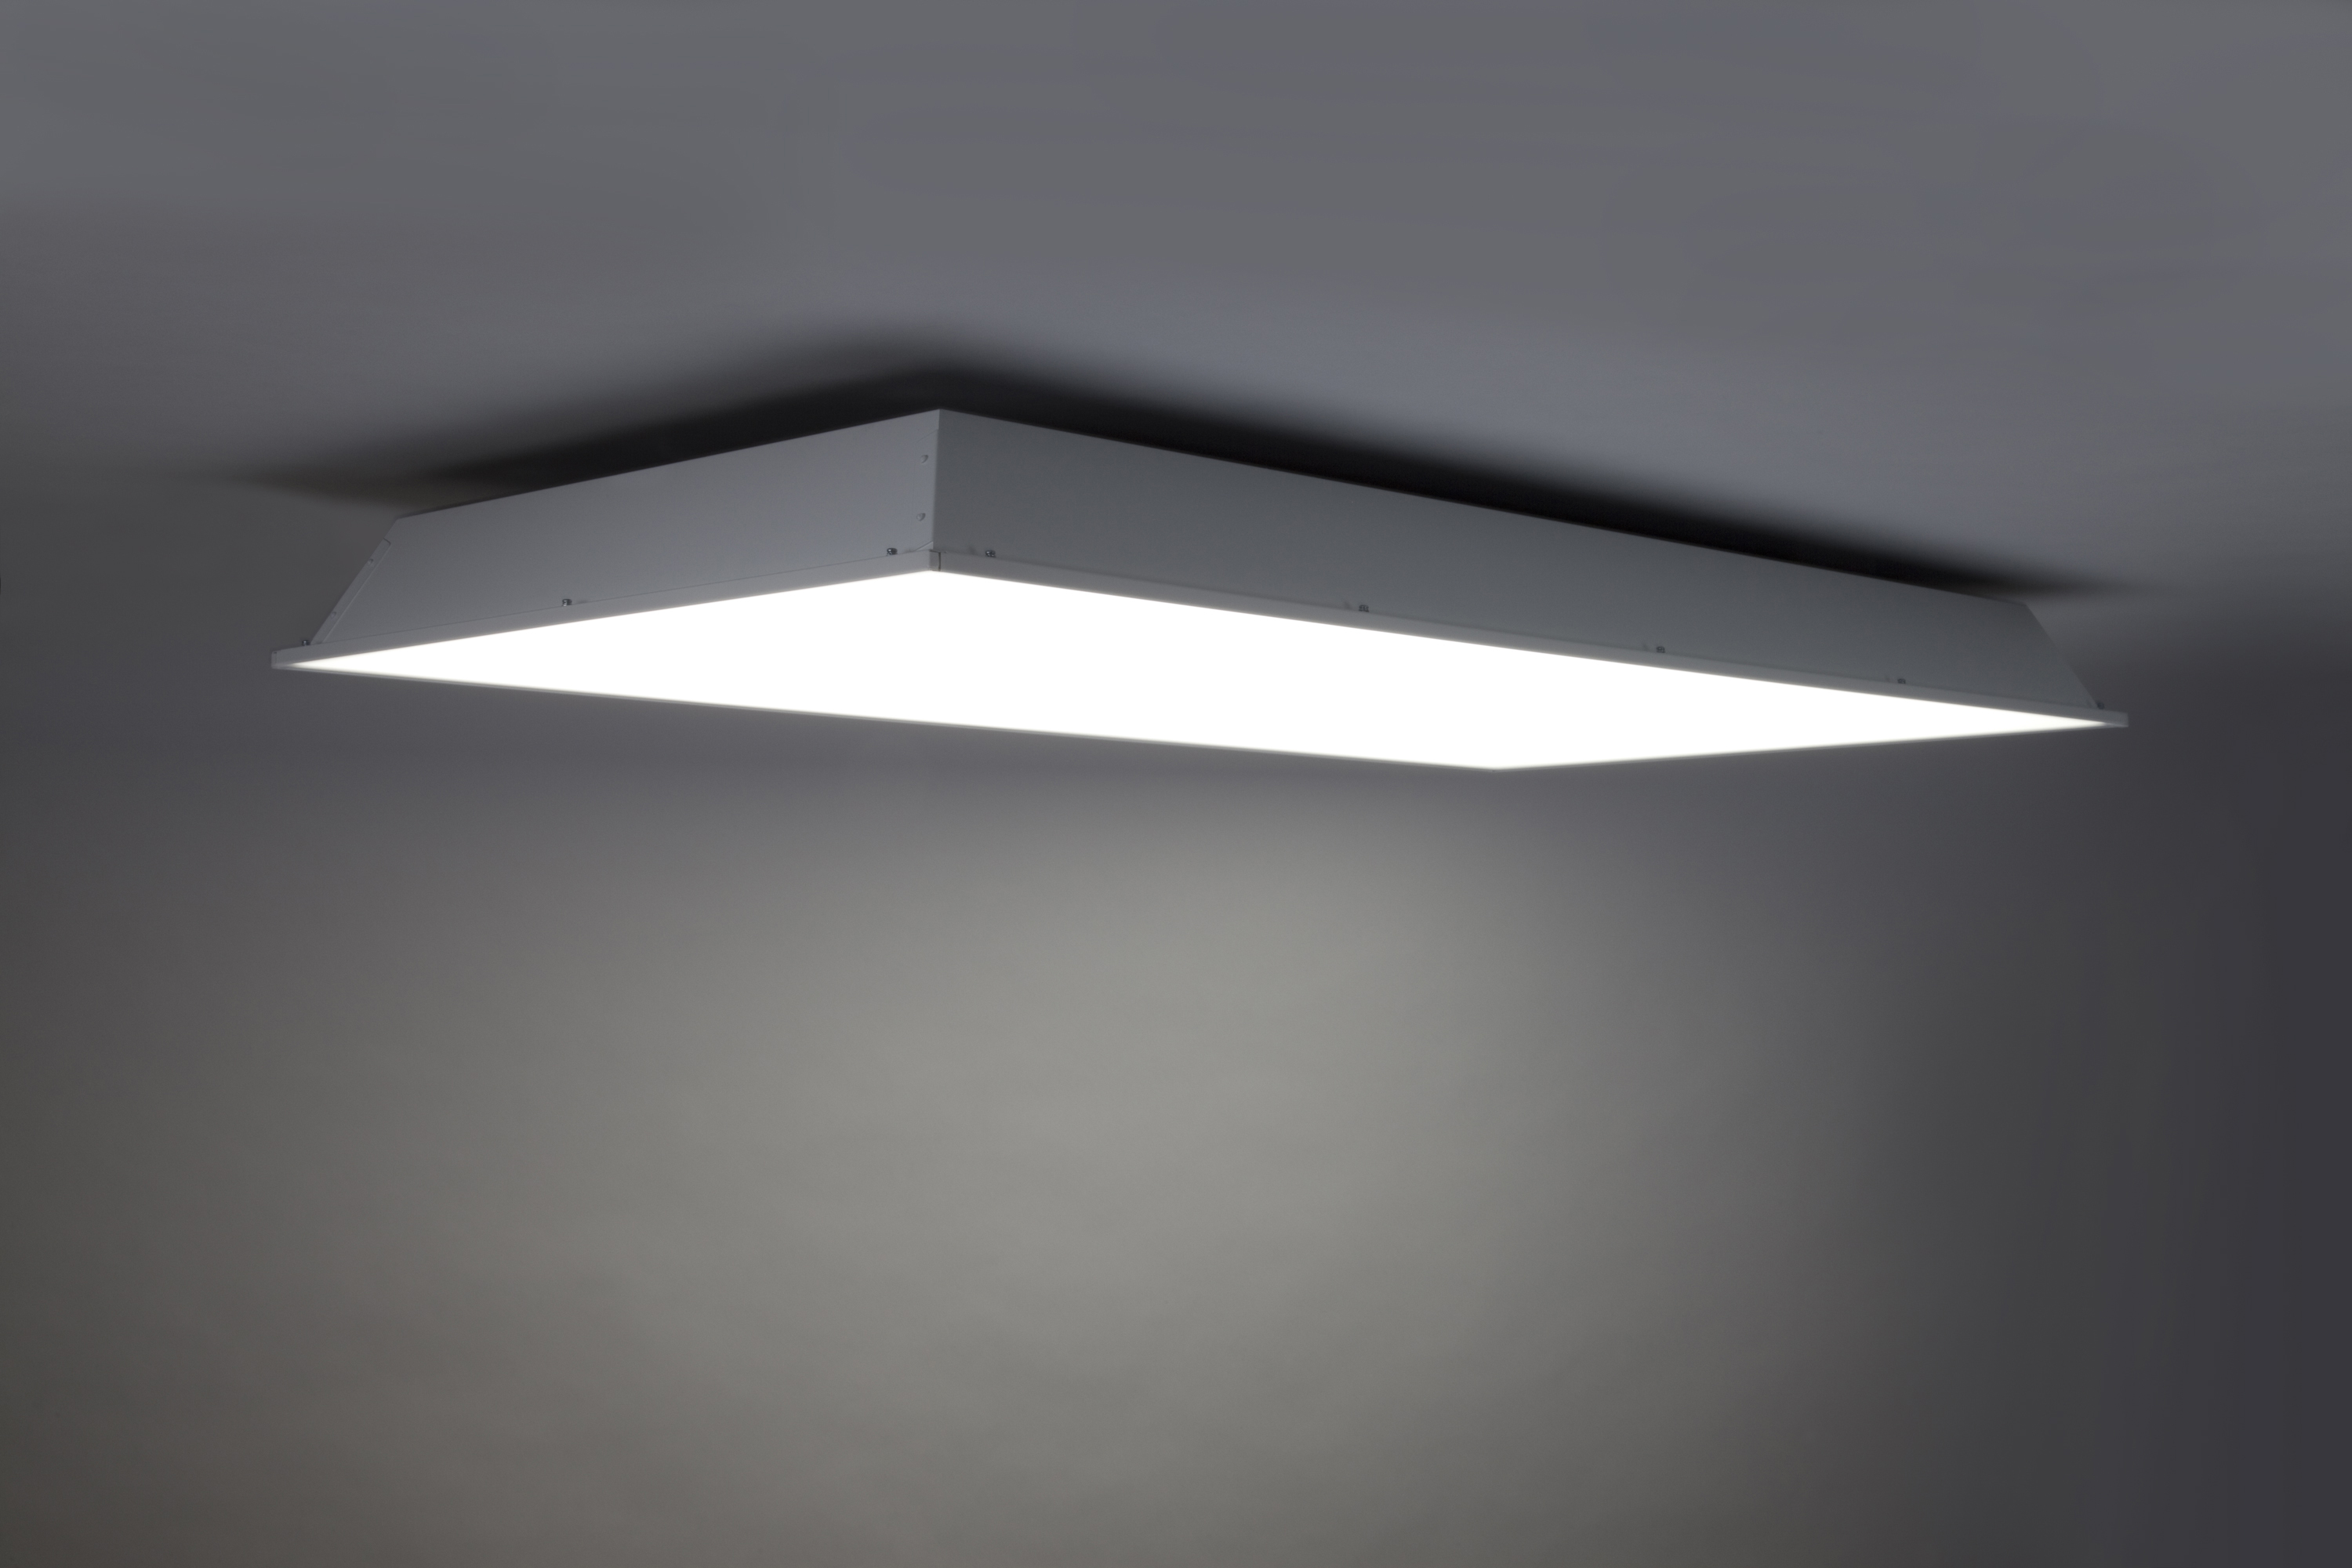 Ceiling Led Lights Flipkart : Ge s lumination bt series led lighting fixture refreshes